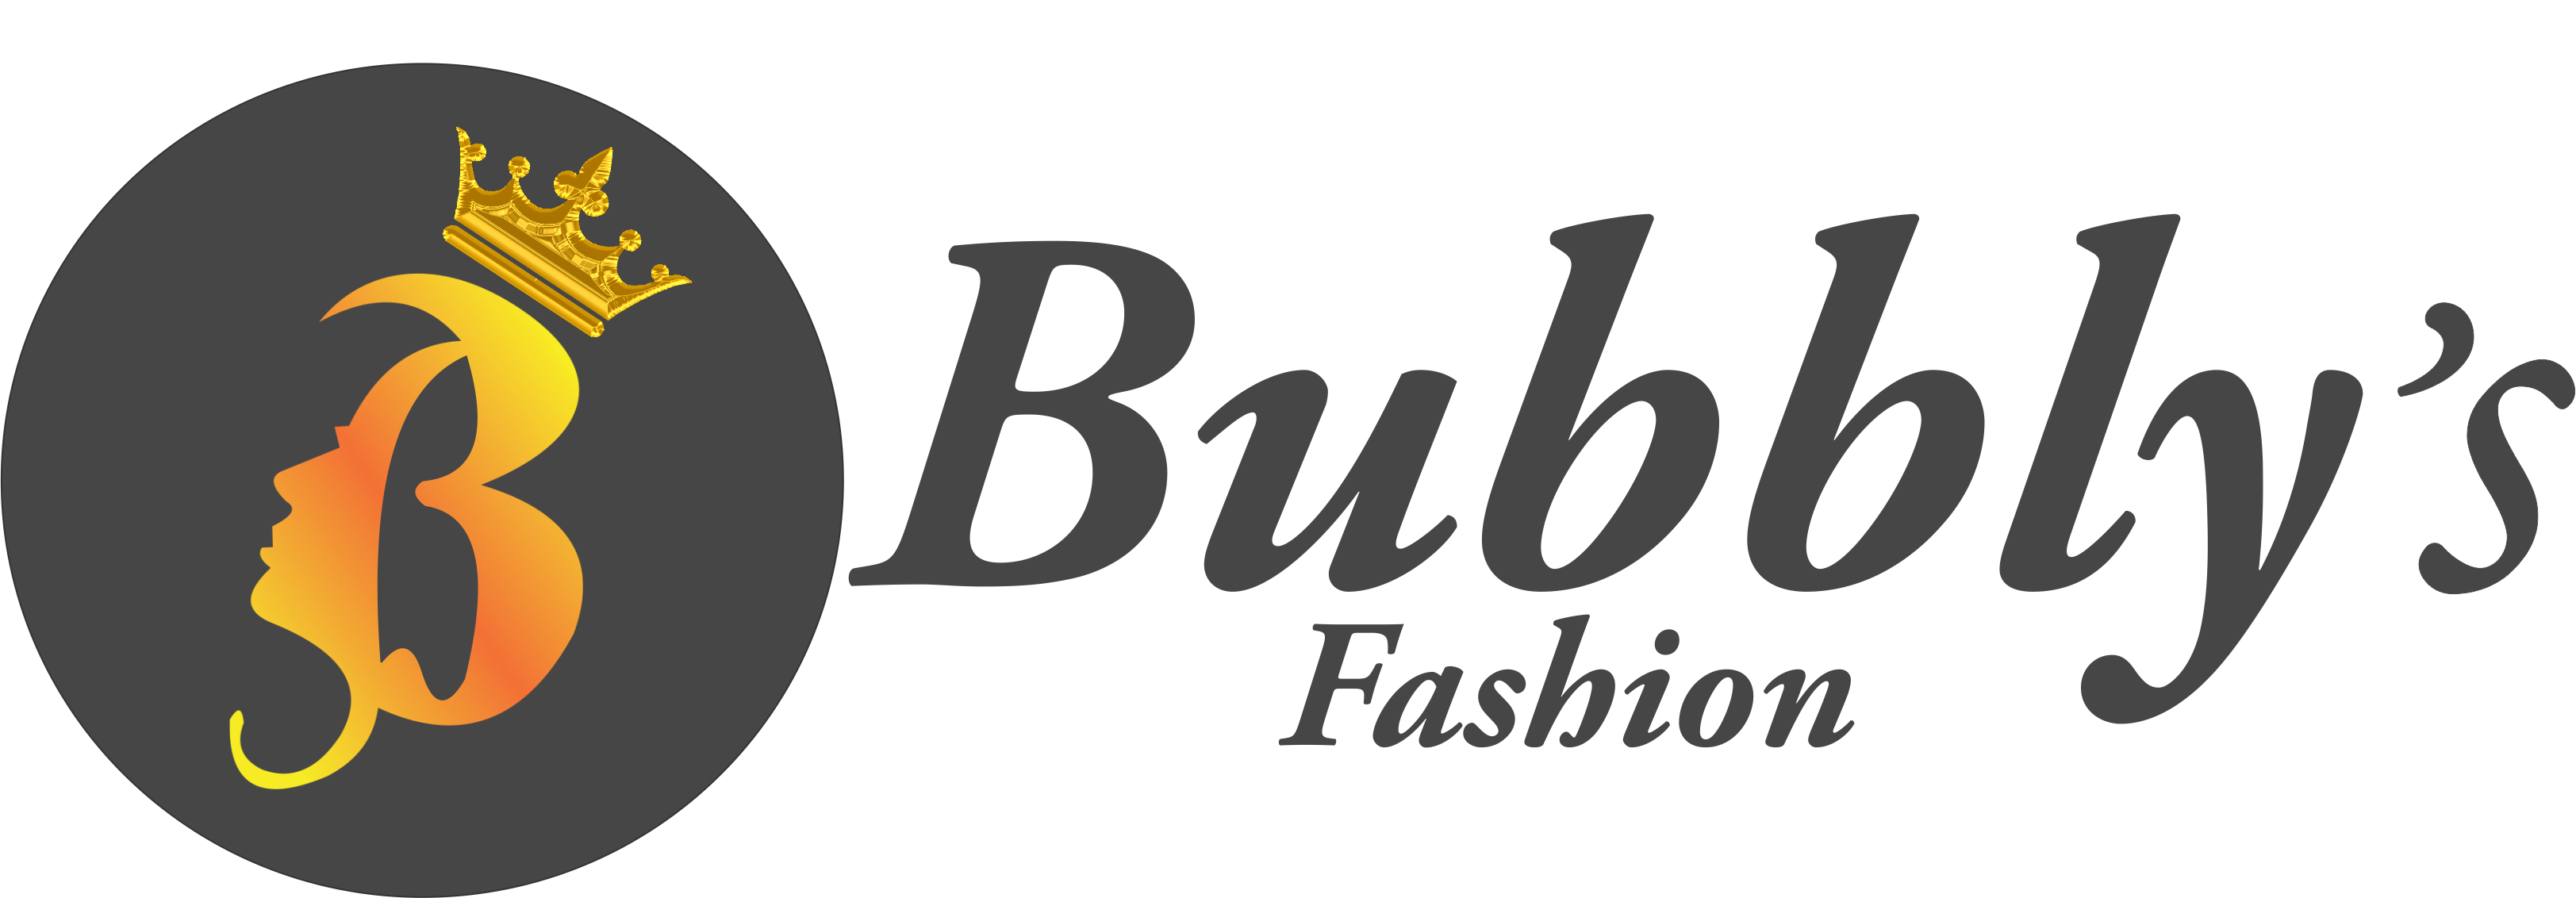 Bubblys Fashion